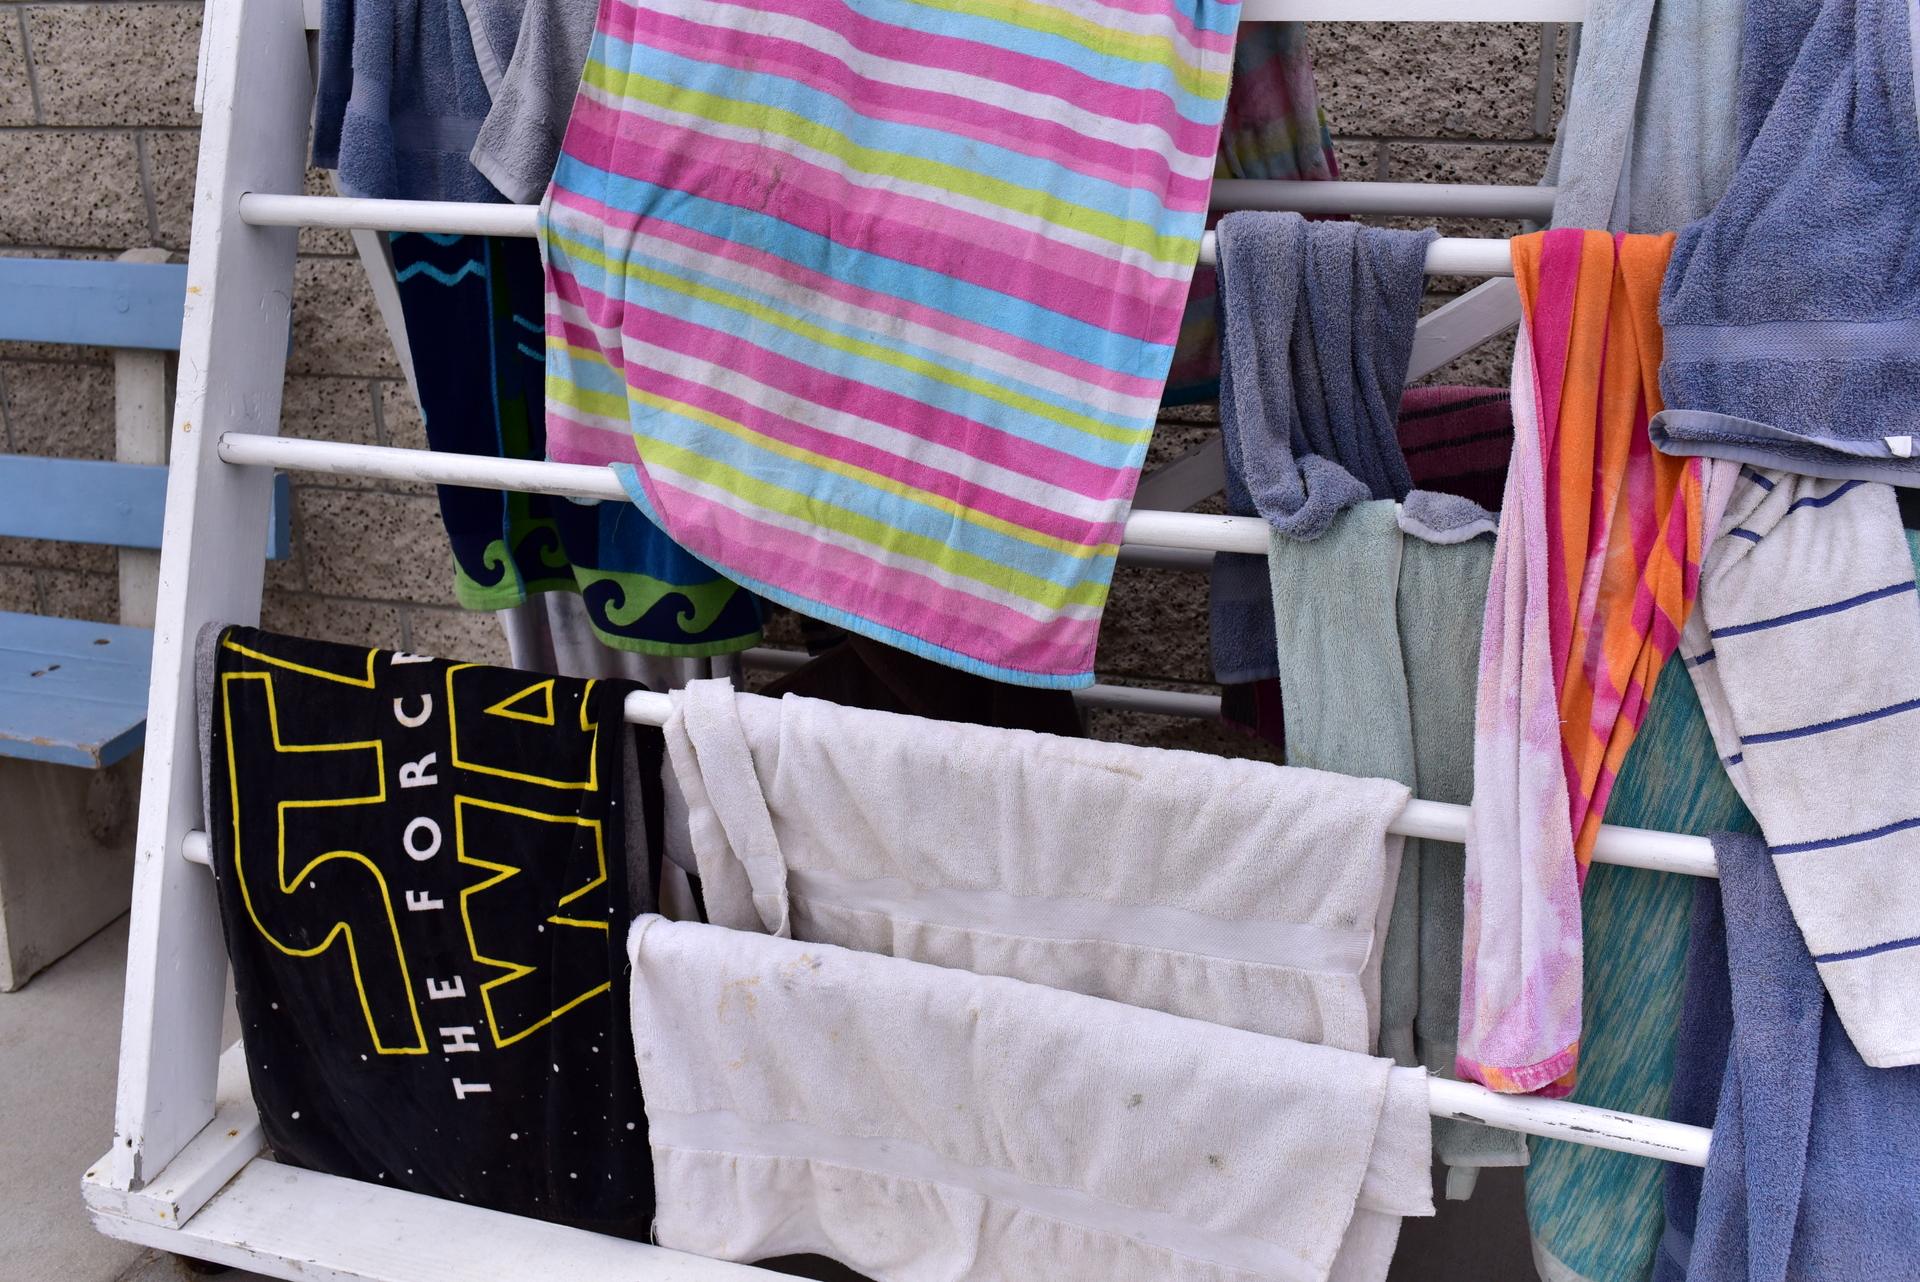 towels on a rack